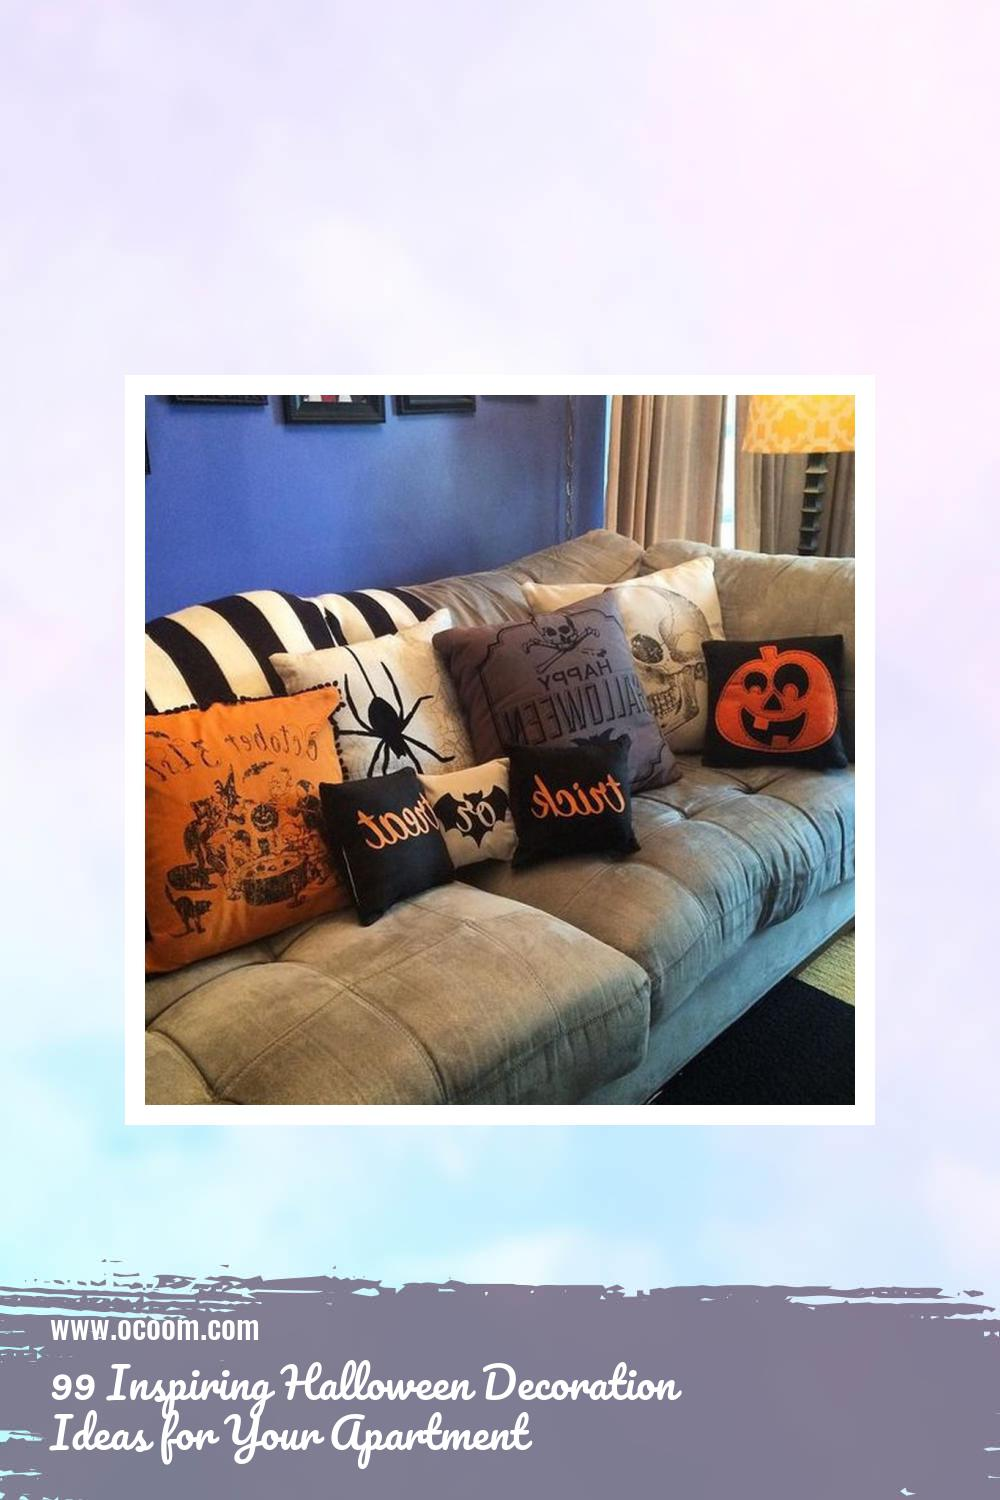 99 Inspiring Halloween Decoration Ideas for Your Apartment 5